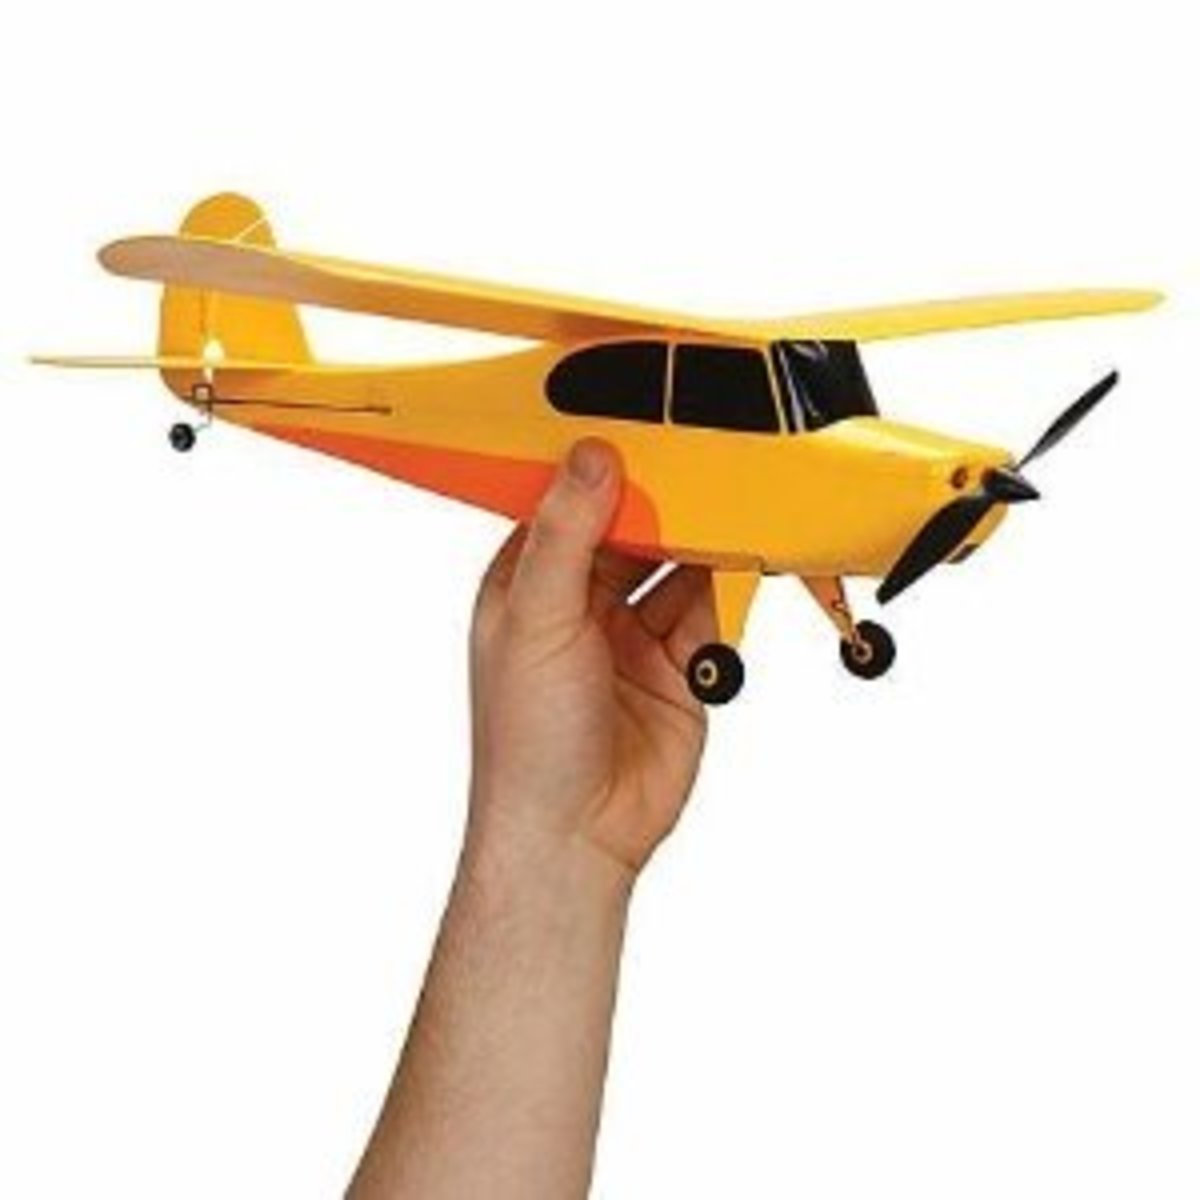 RC Trainer Airplane Review: The HobbyZone Champ